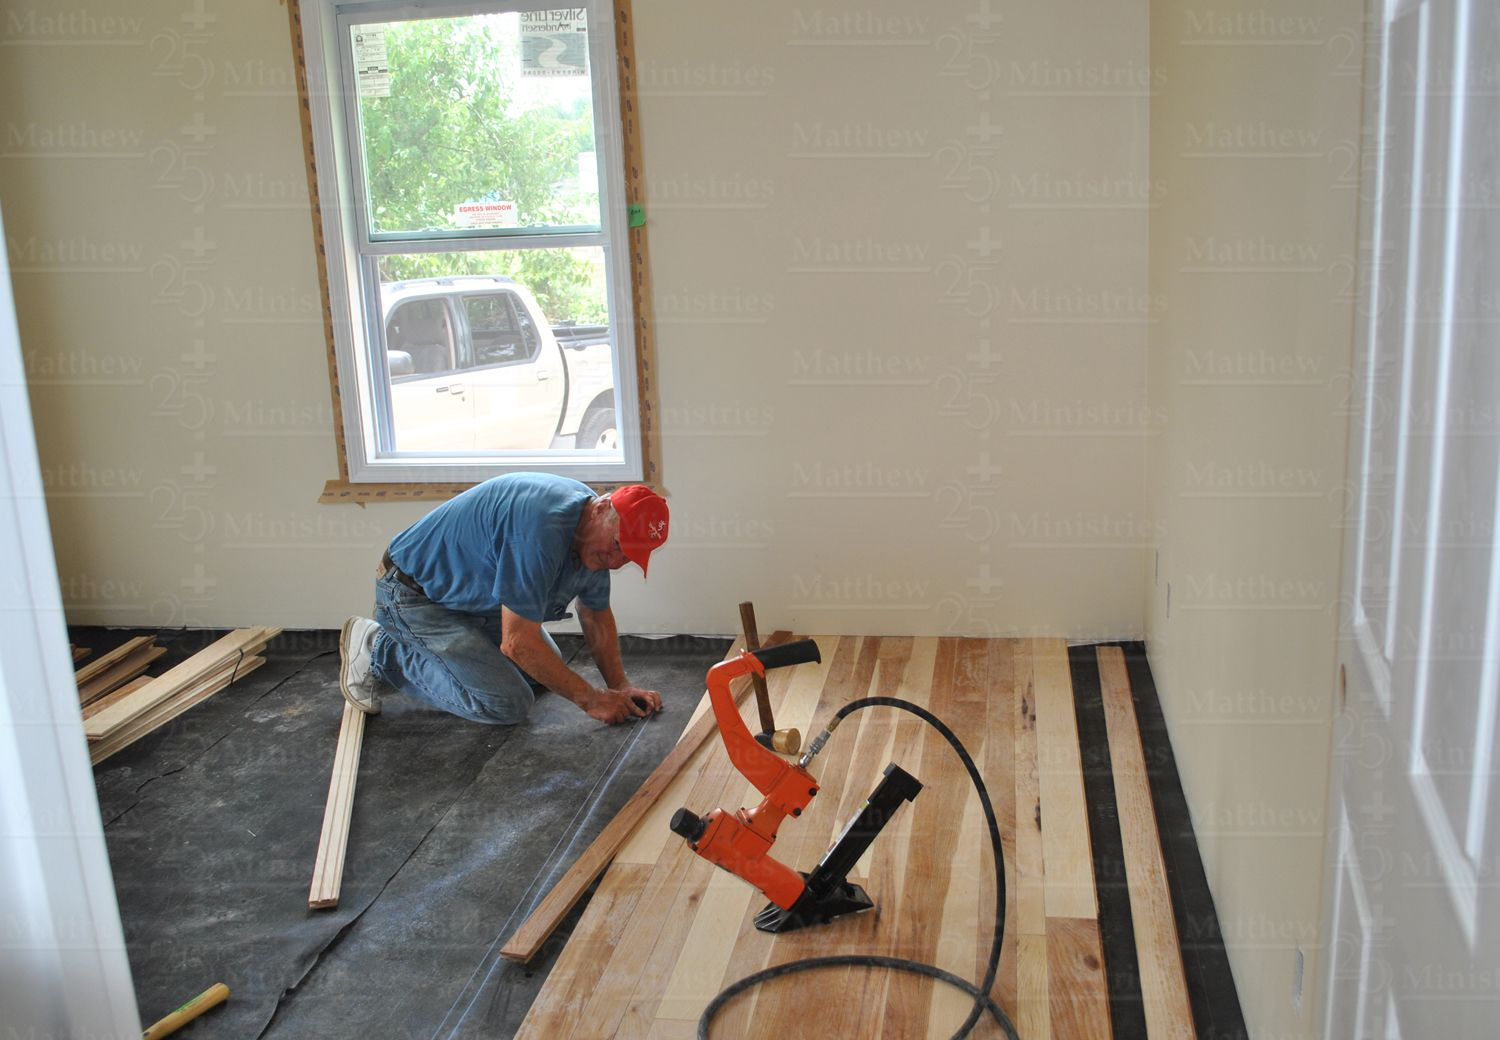 An M25M volunteer installs flooring in an Indiana home damaged by the March 2012 tornadoes